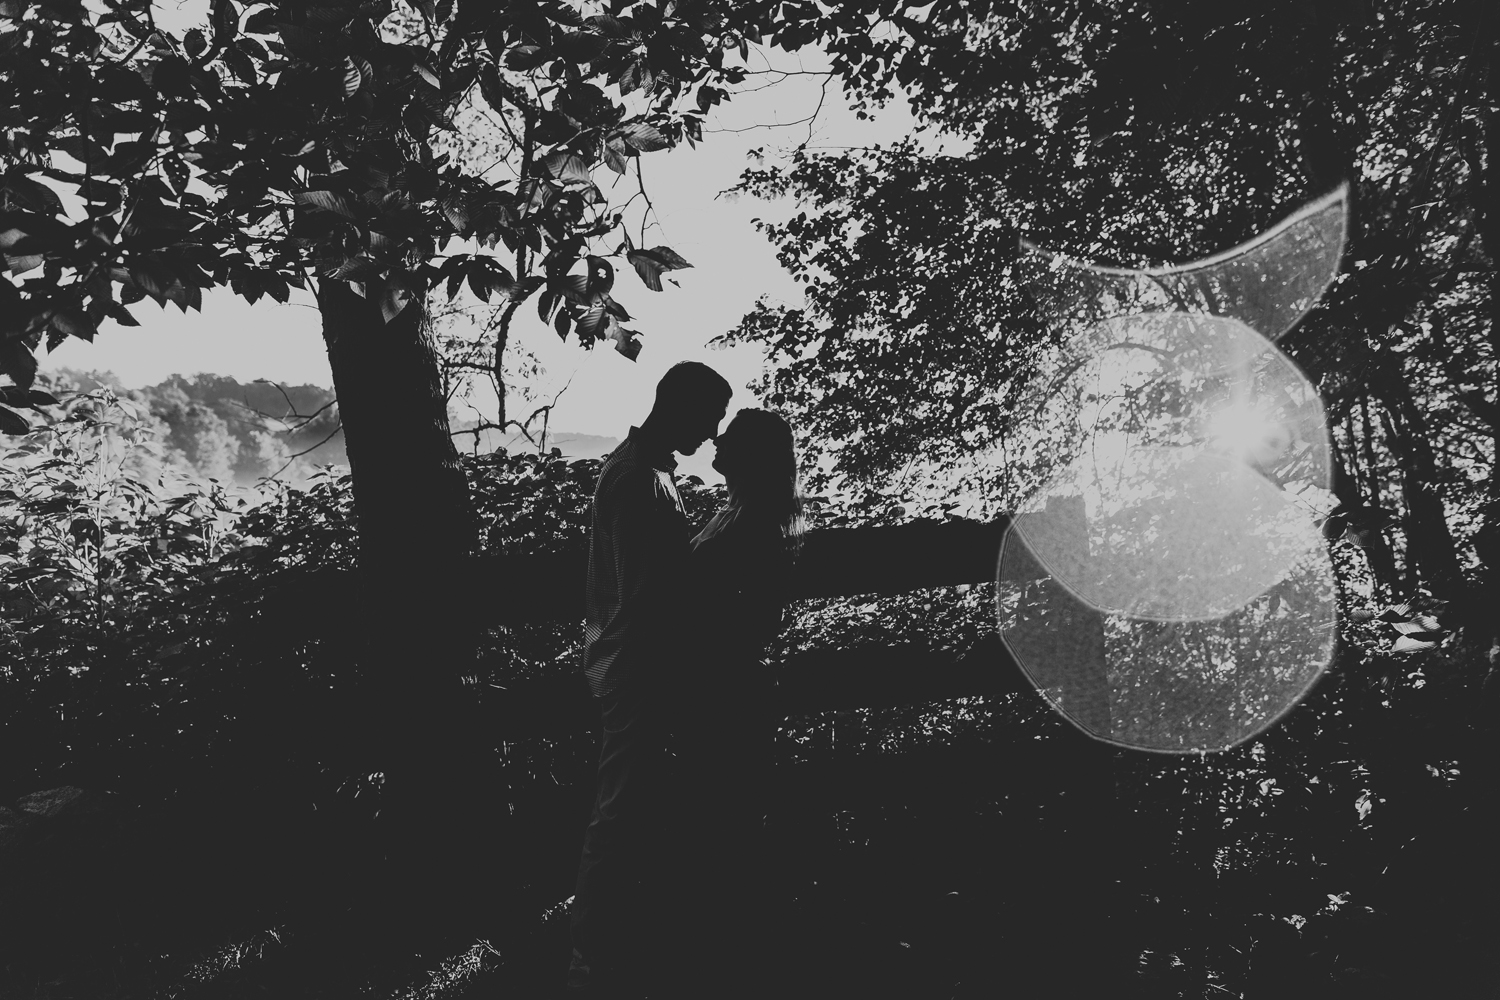 silhouette-engagement-photography-natural-light-the-laurels-preserve-lehigh-valley